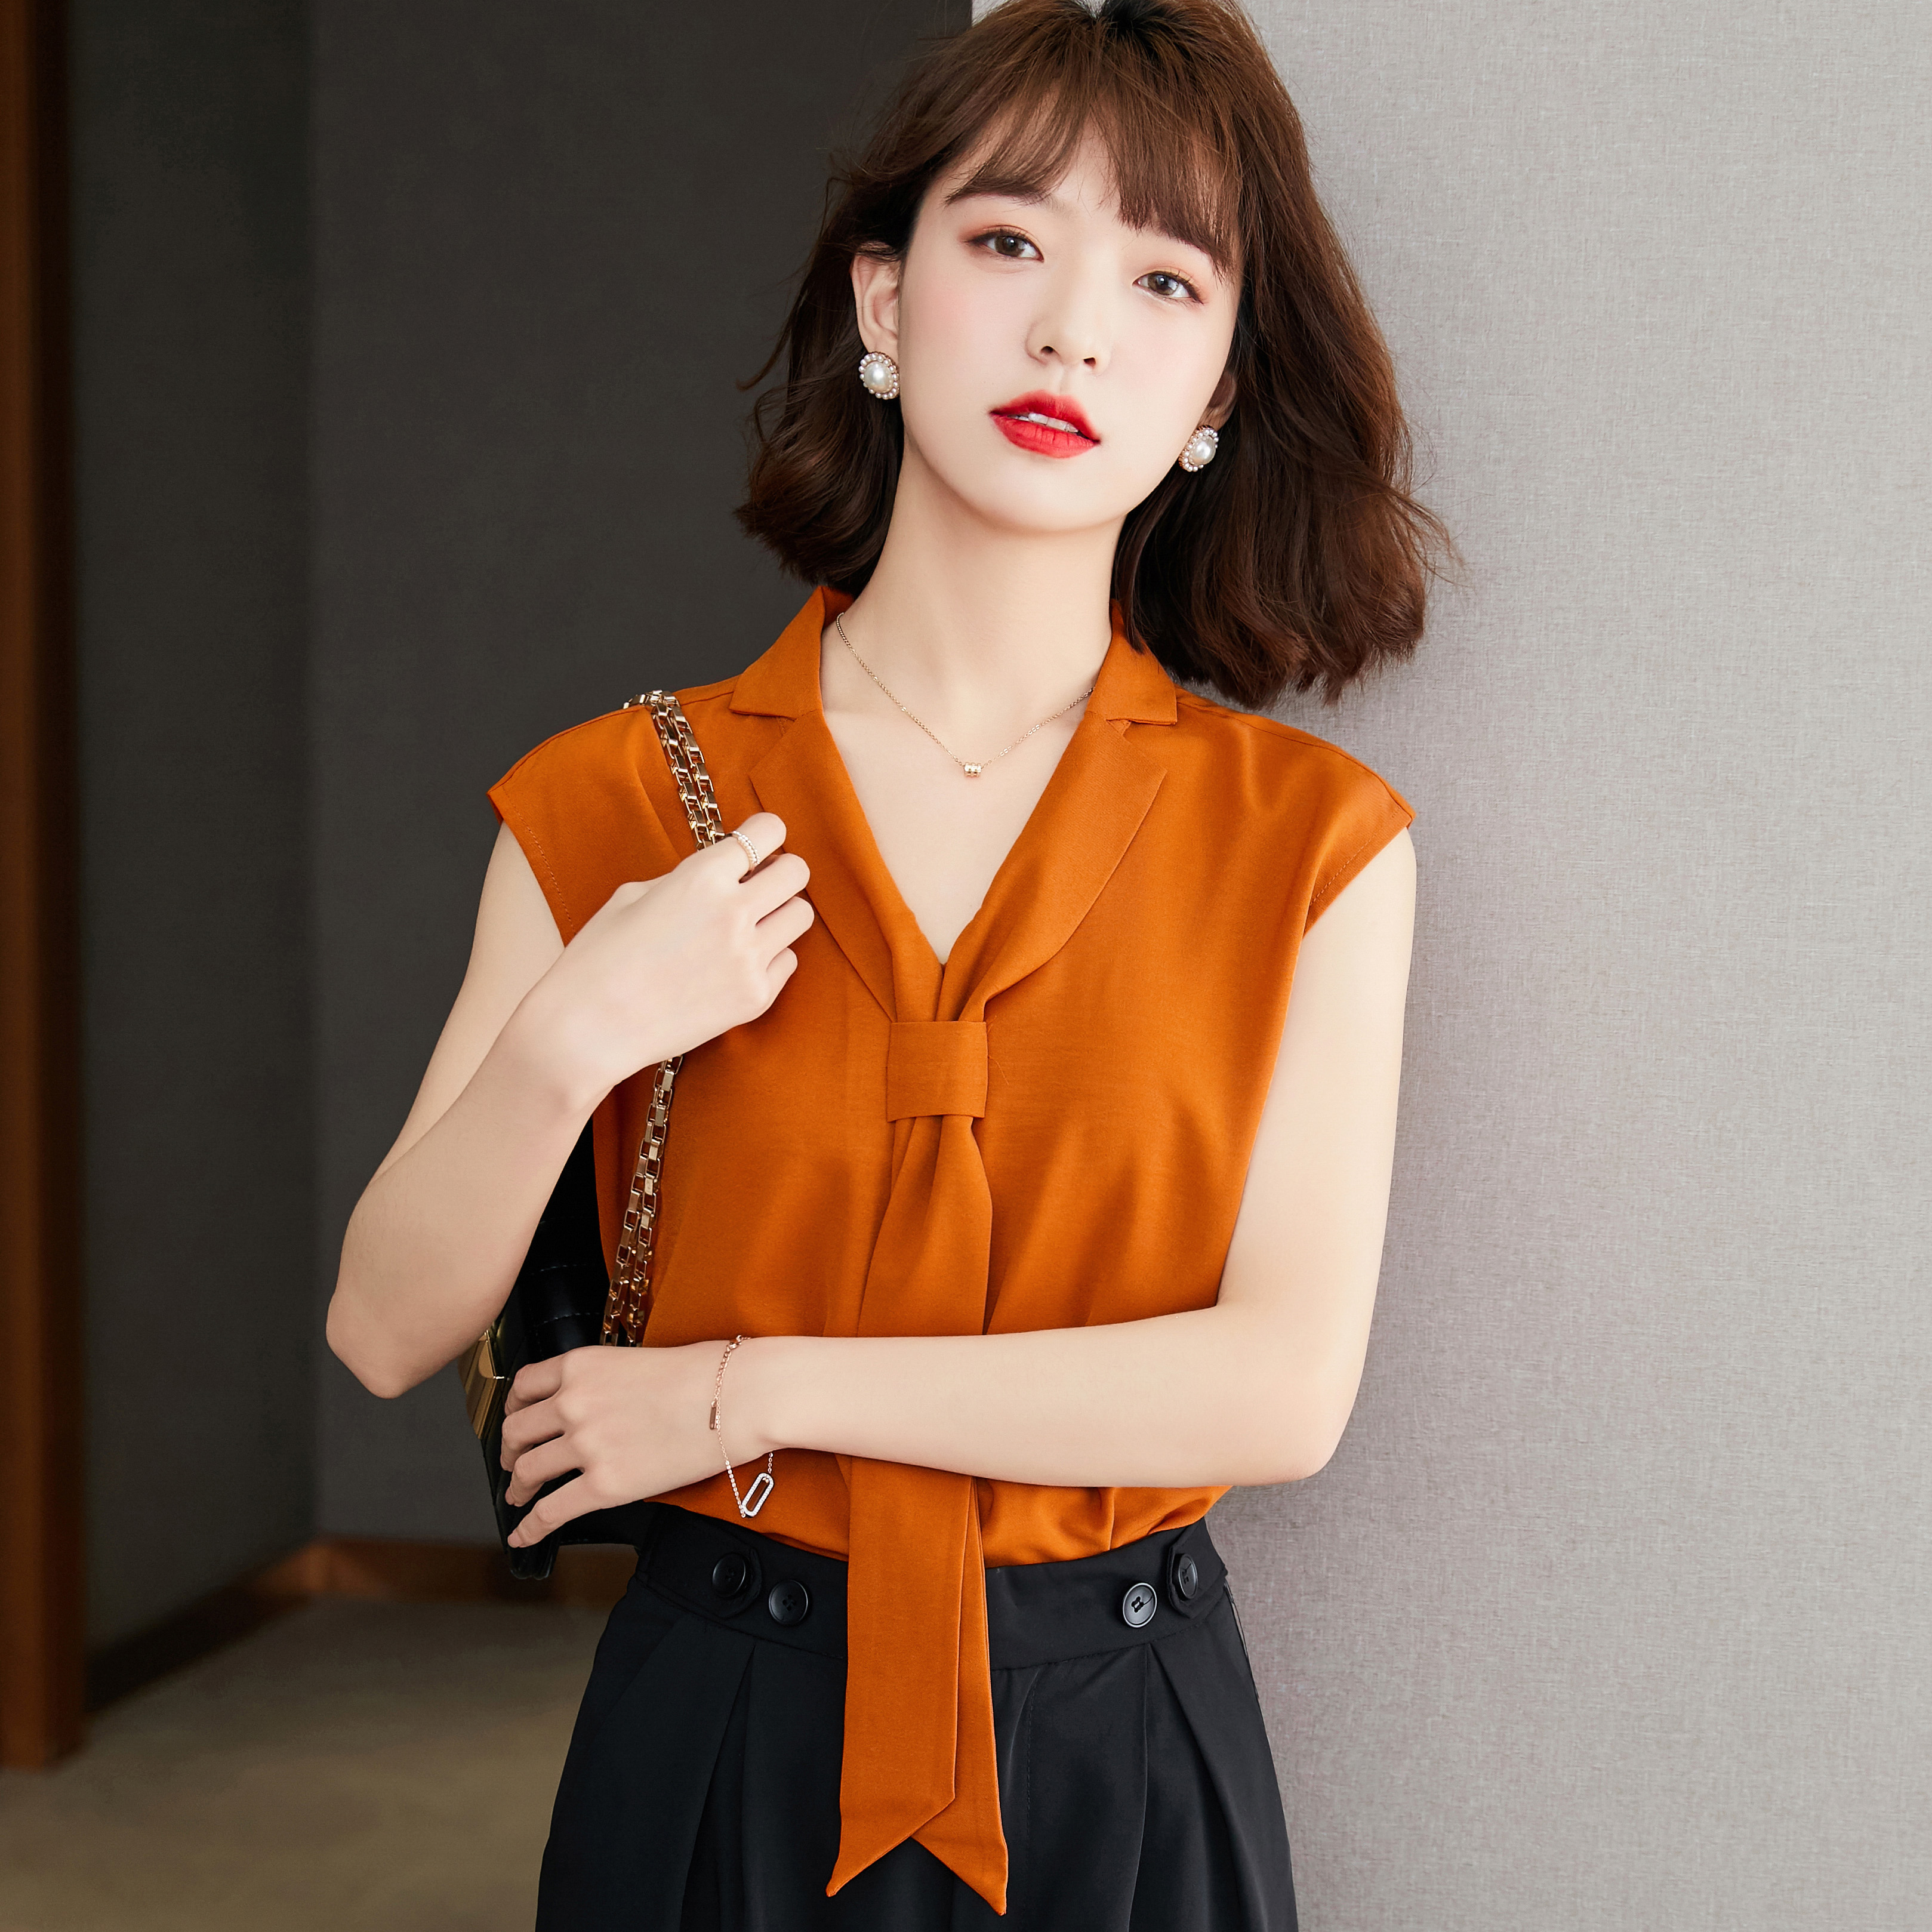 2021 summer style off shoulder top womens new Korean vest foreign style small shirt loose Ribbon Shirt